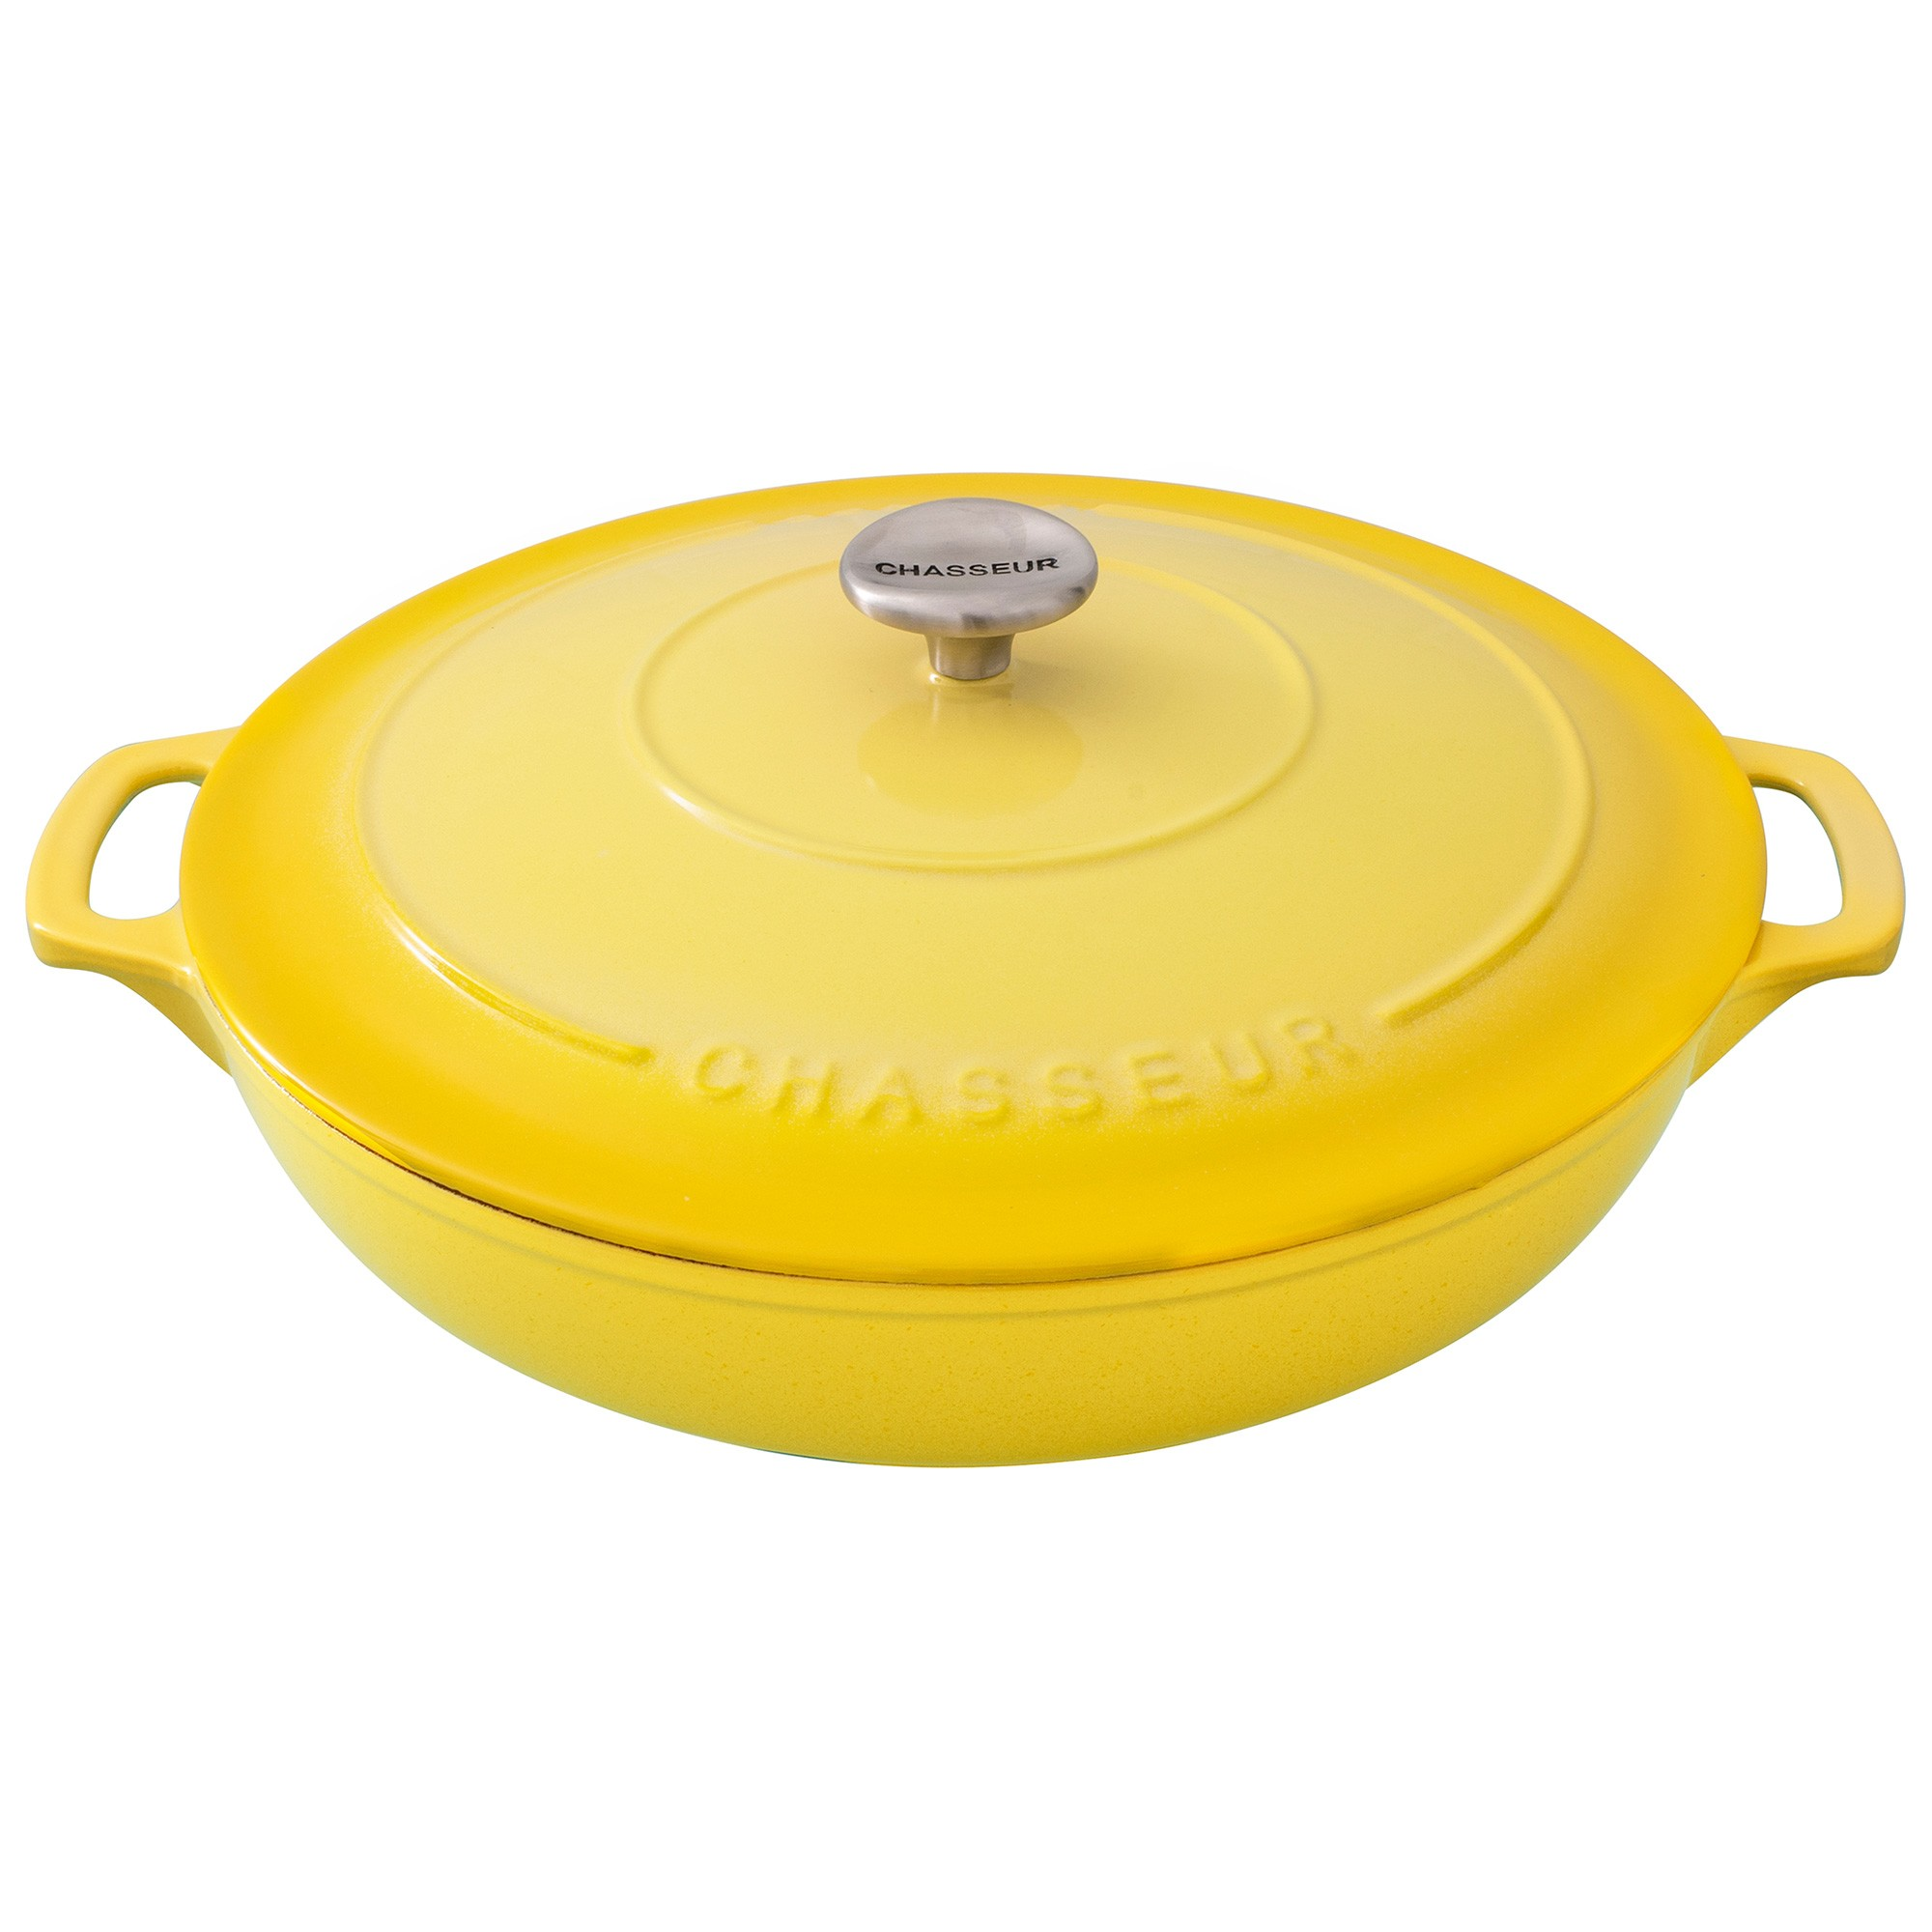 Chasseur Cast Iron Round Casserole, 30cm, Lemon Yellow